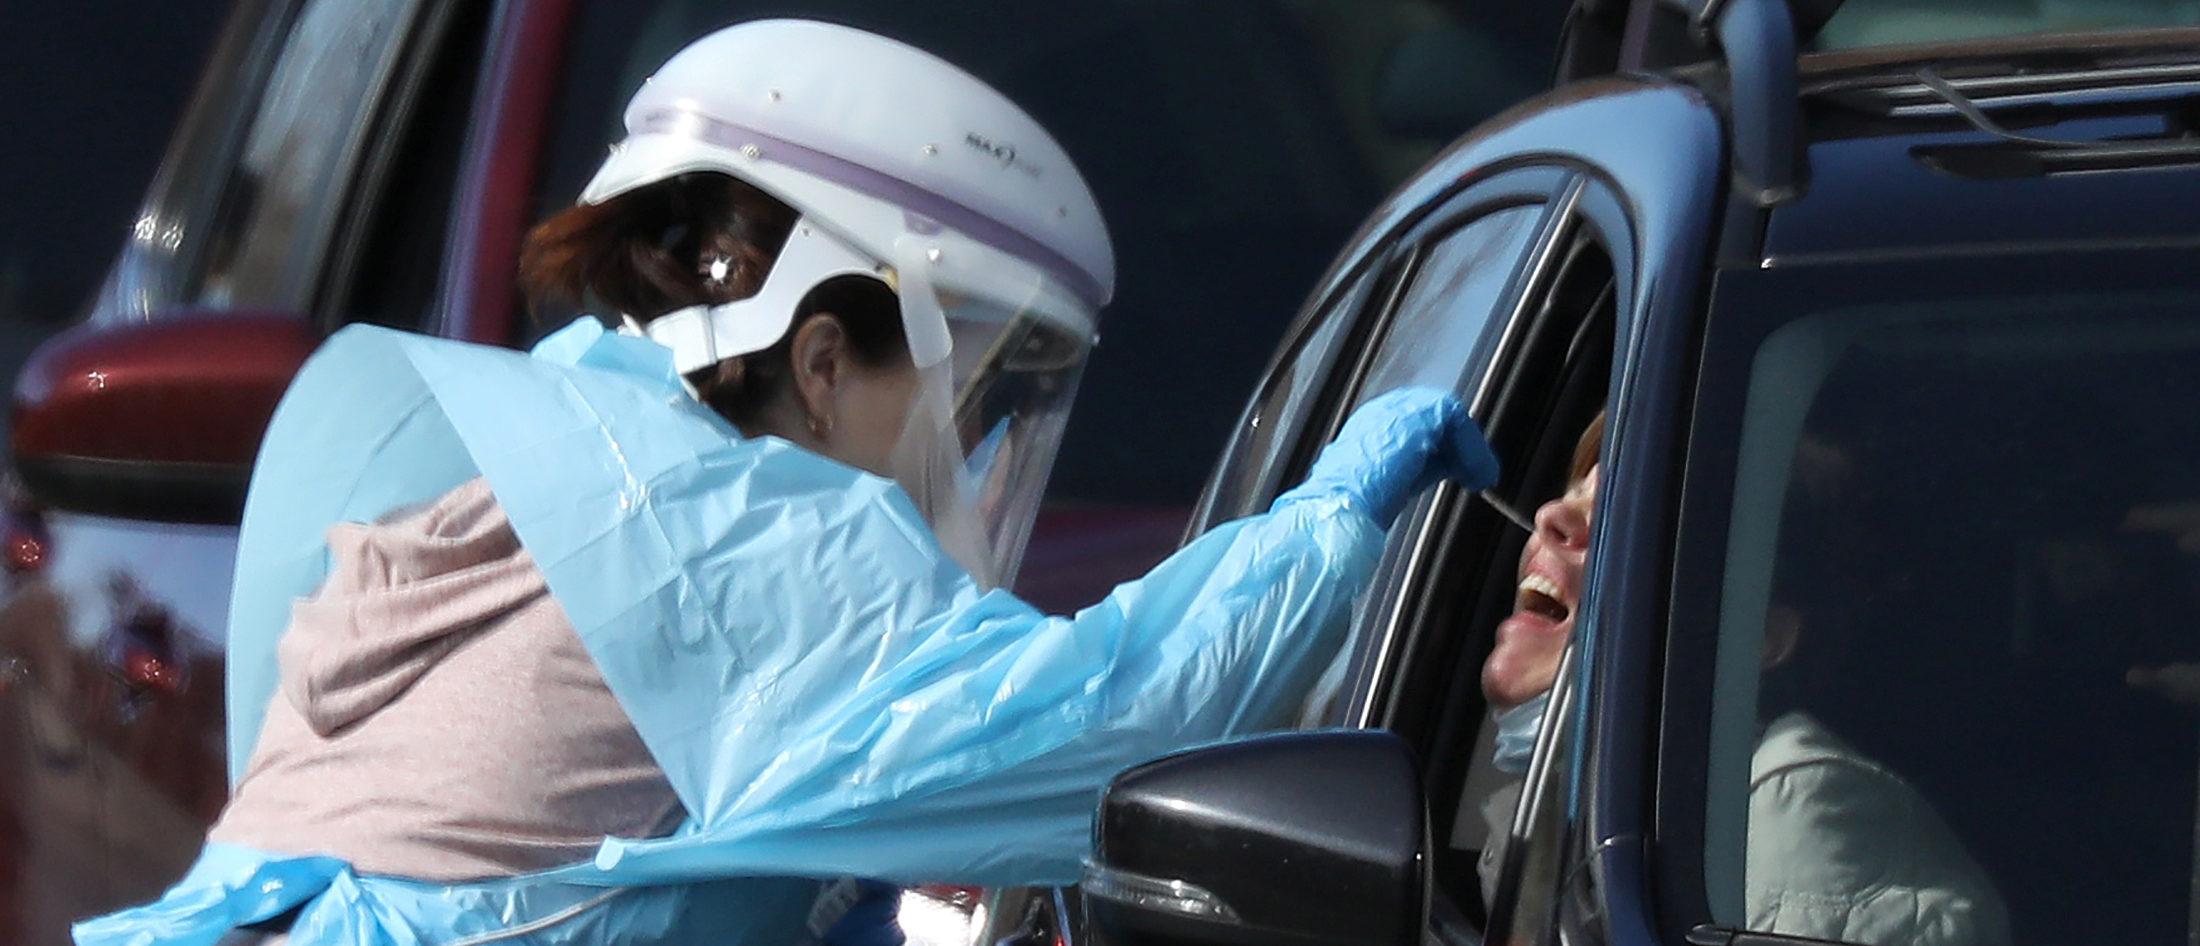 Health care worker tests people at a drive-thru testing station run by the state health department, for people who suspect they have novel coronavirus, in Denver